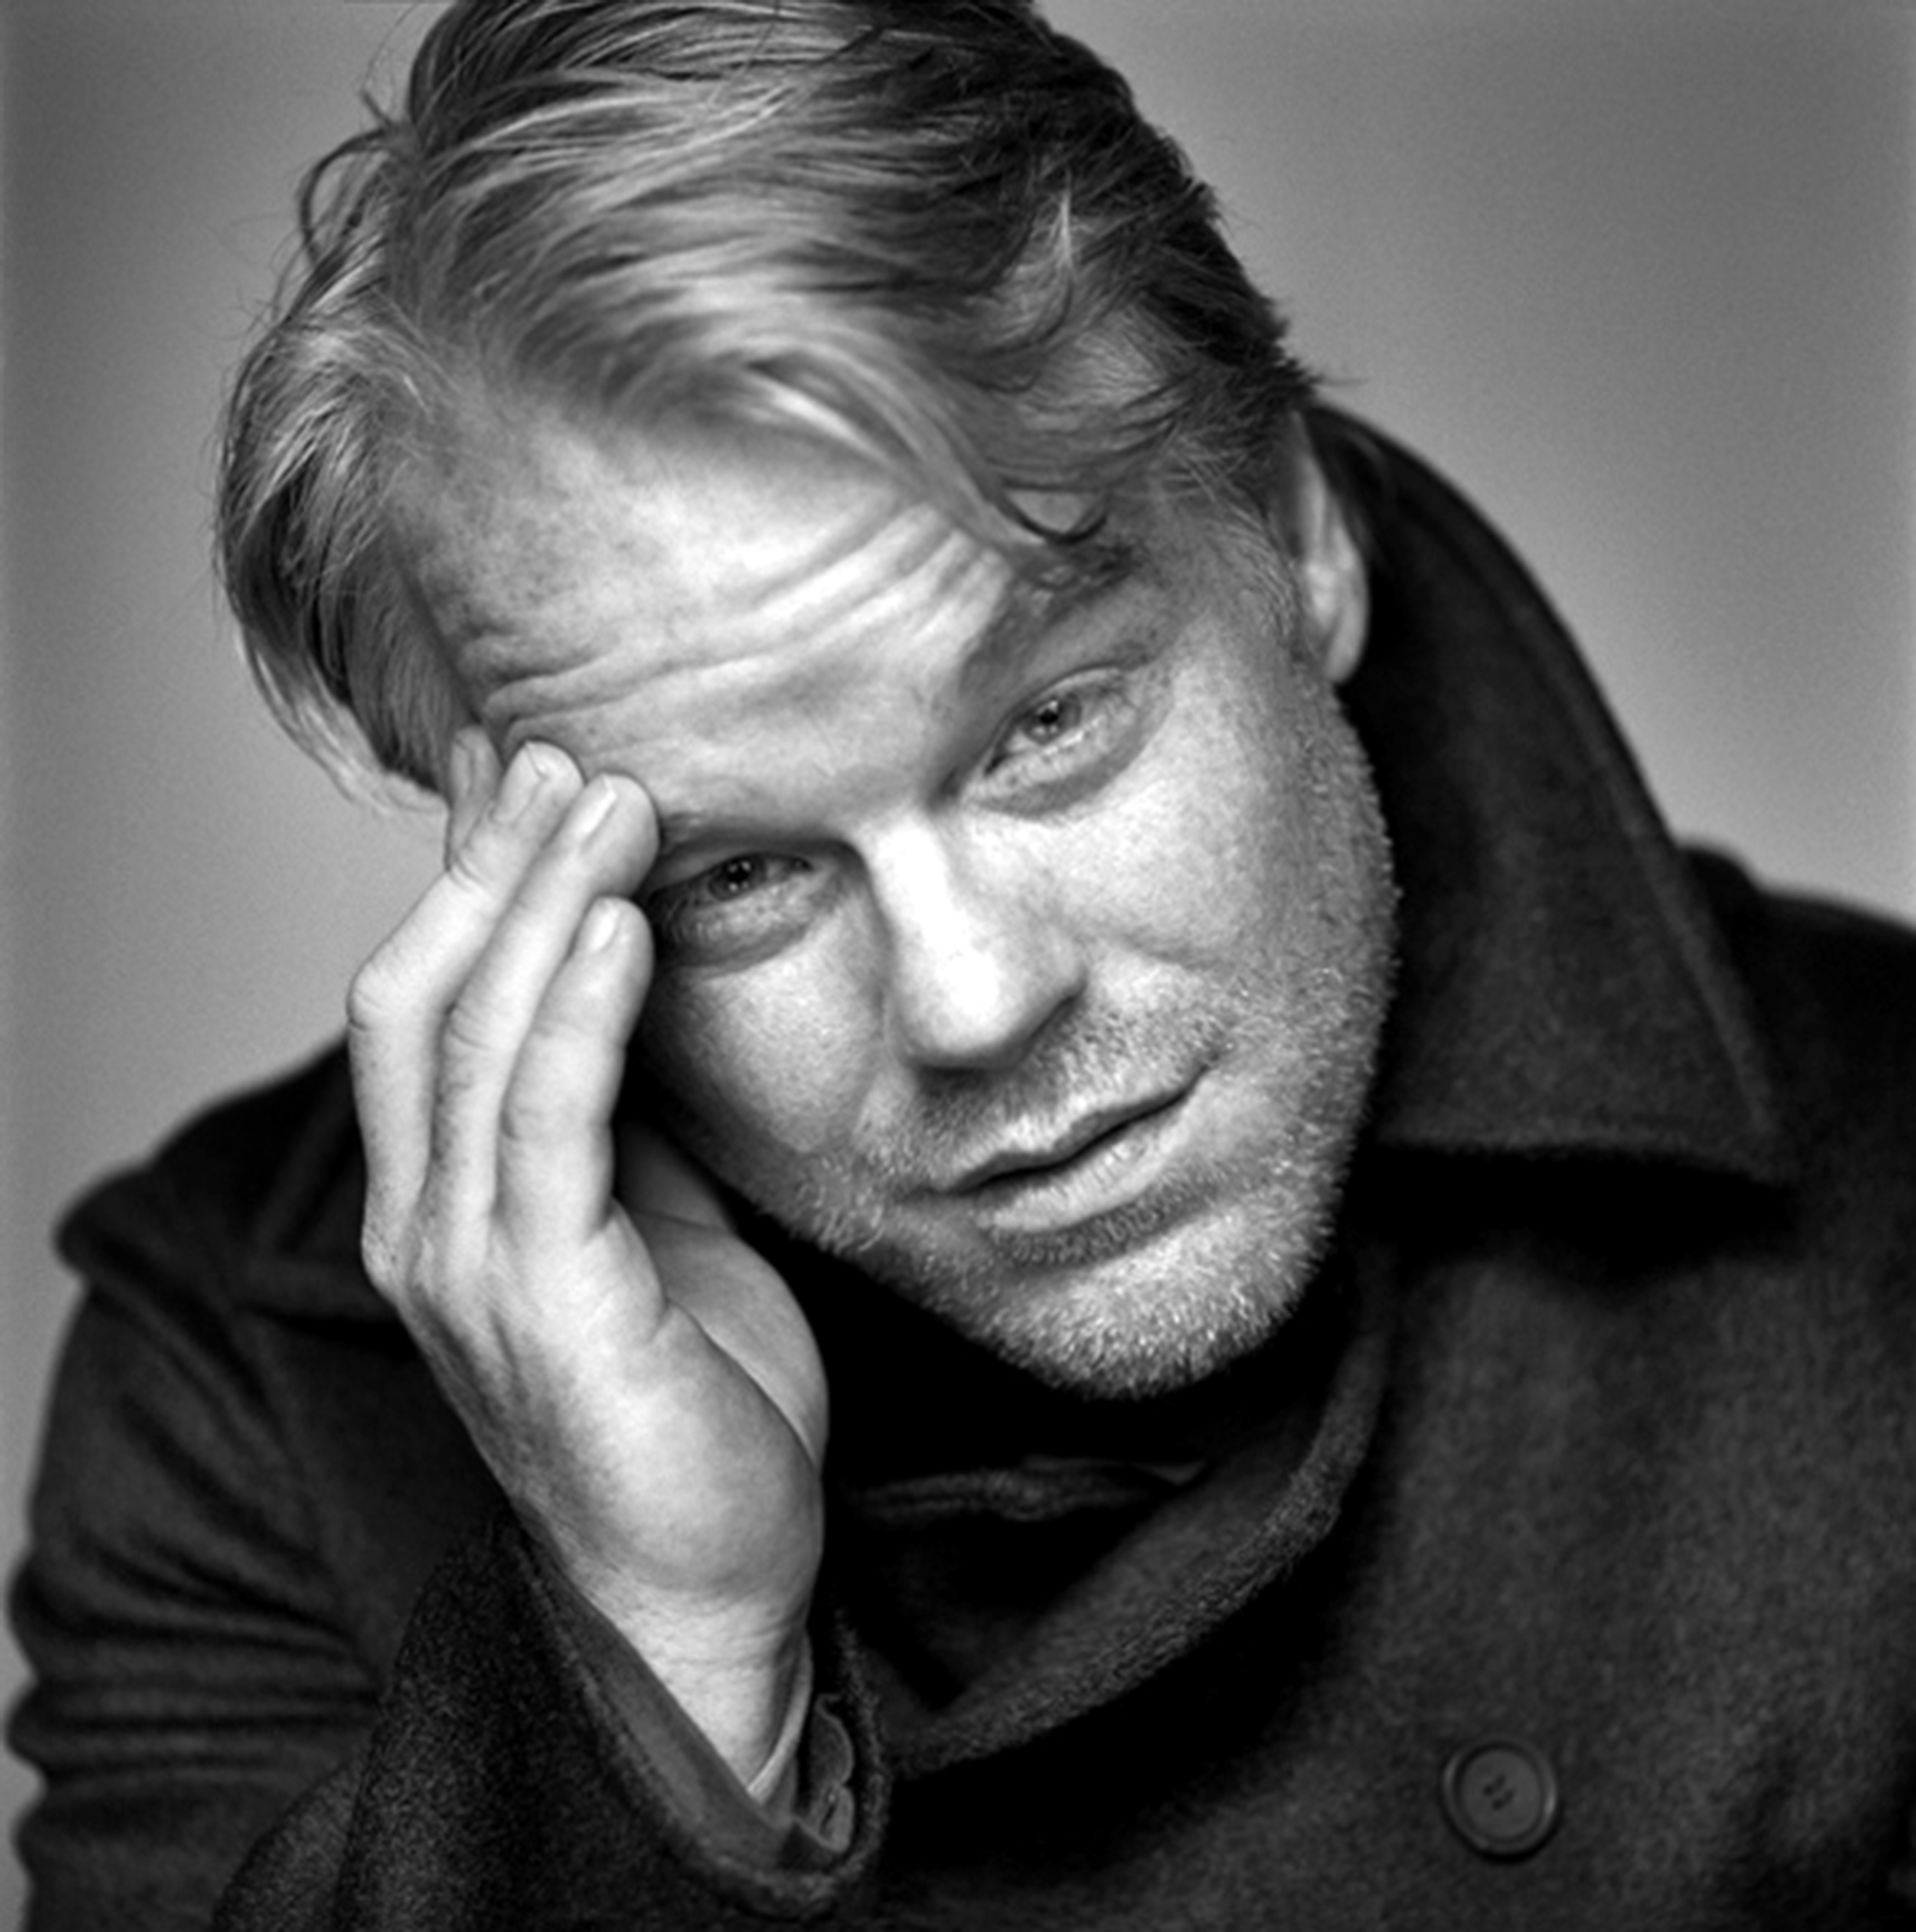 The Most Ambitious Philip Seymour Hoffman The